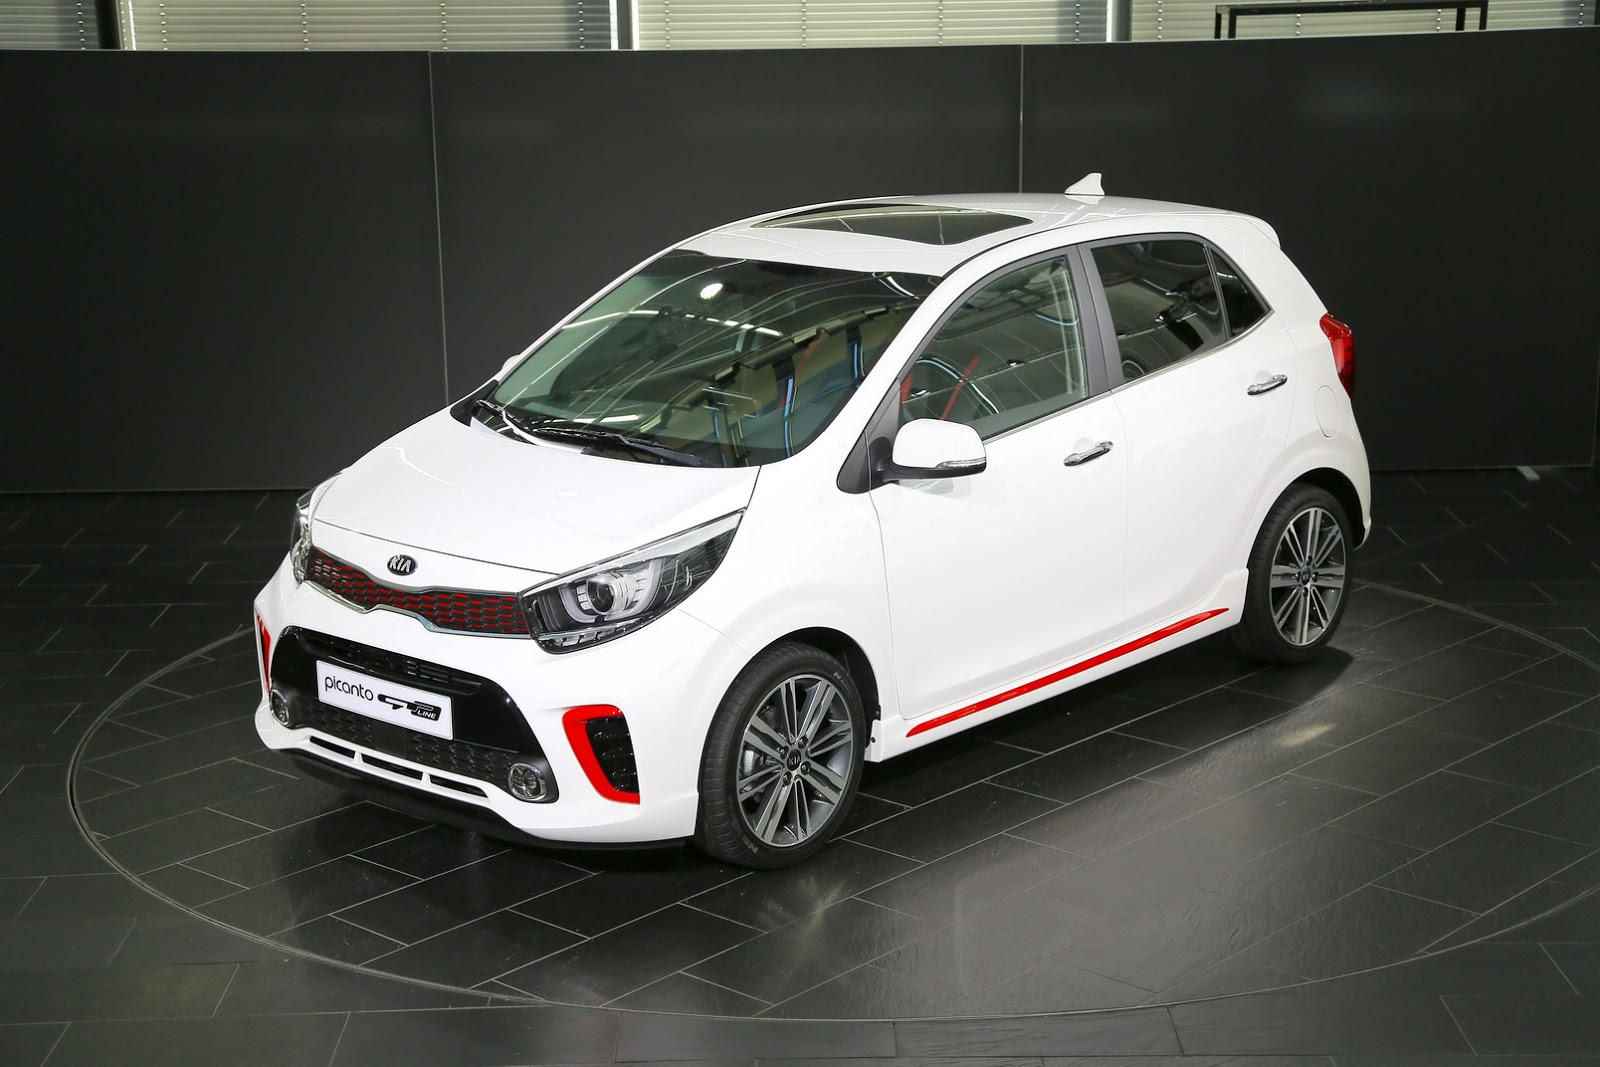 2017 kia picanto 12 autonetmagz review mobil dan motor baru indonesia. Black Bedroom Furniture Sets. Home Design Ideas